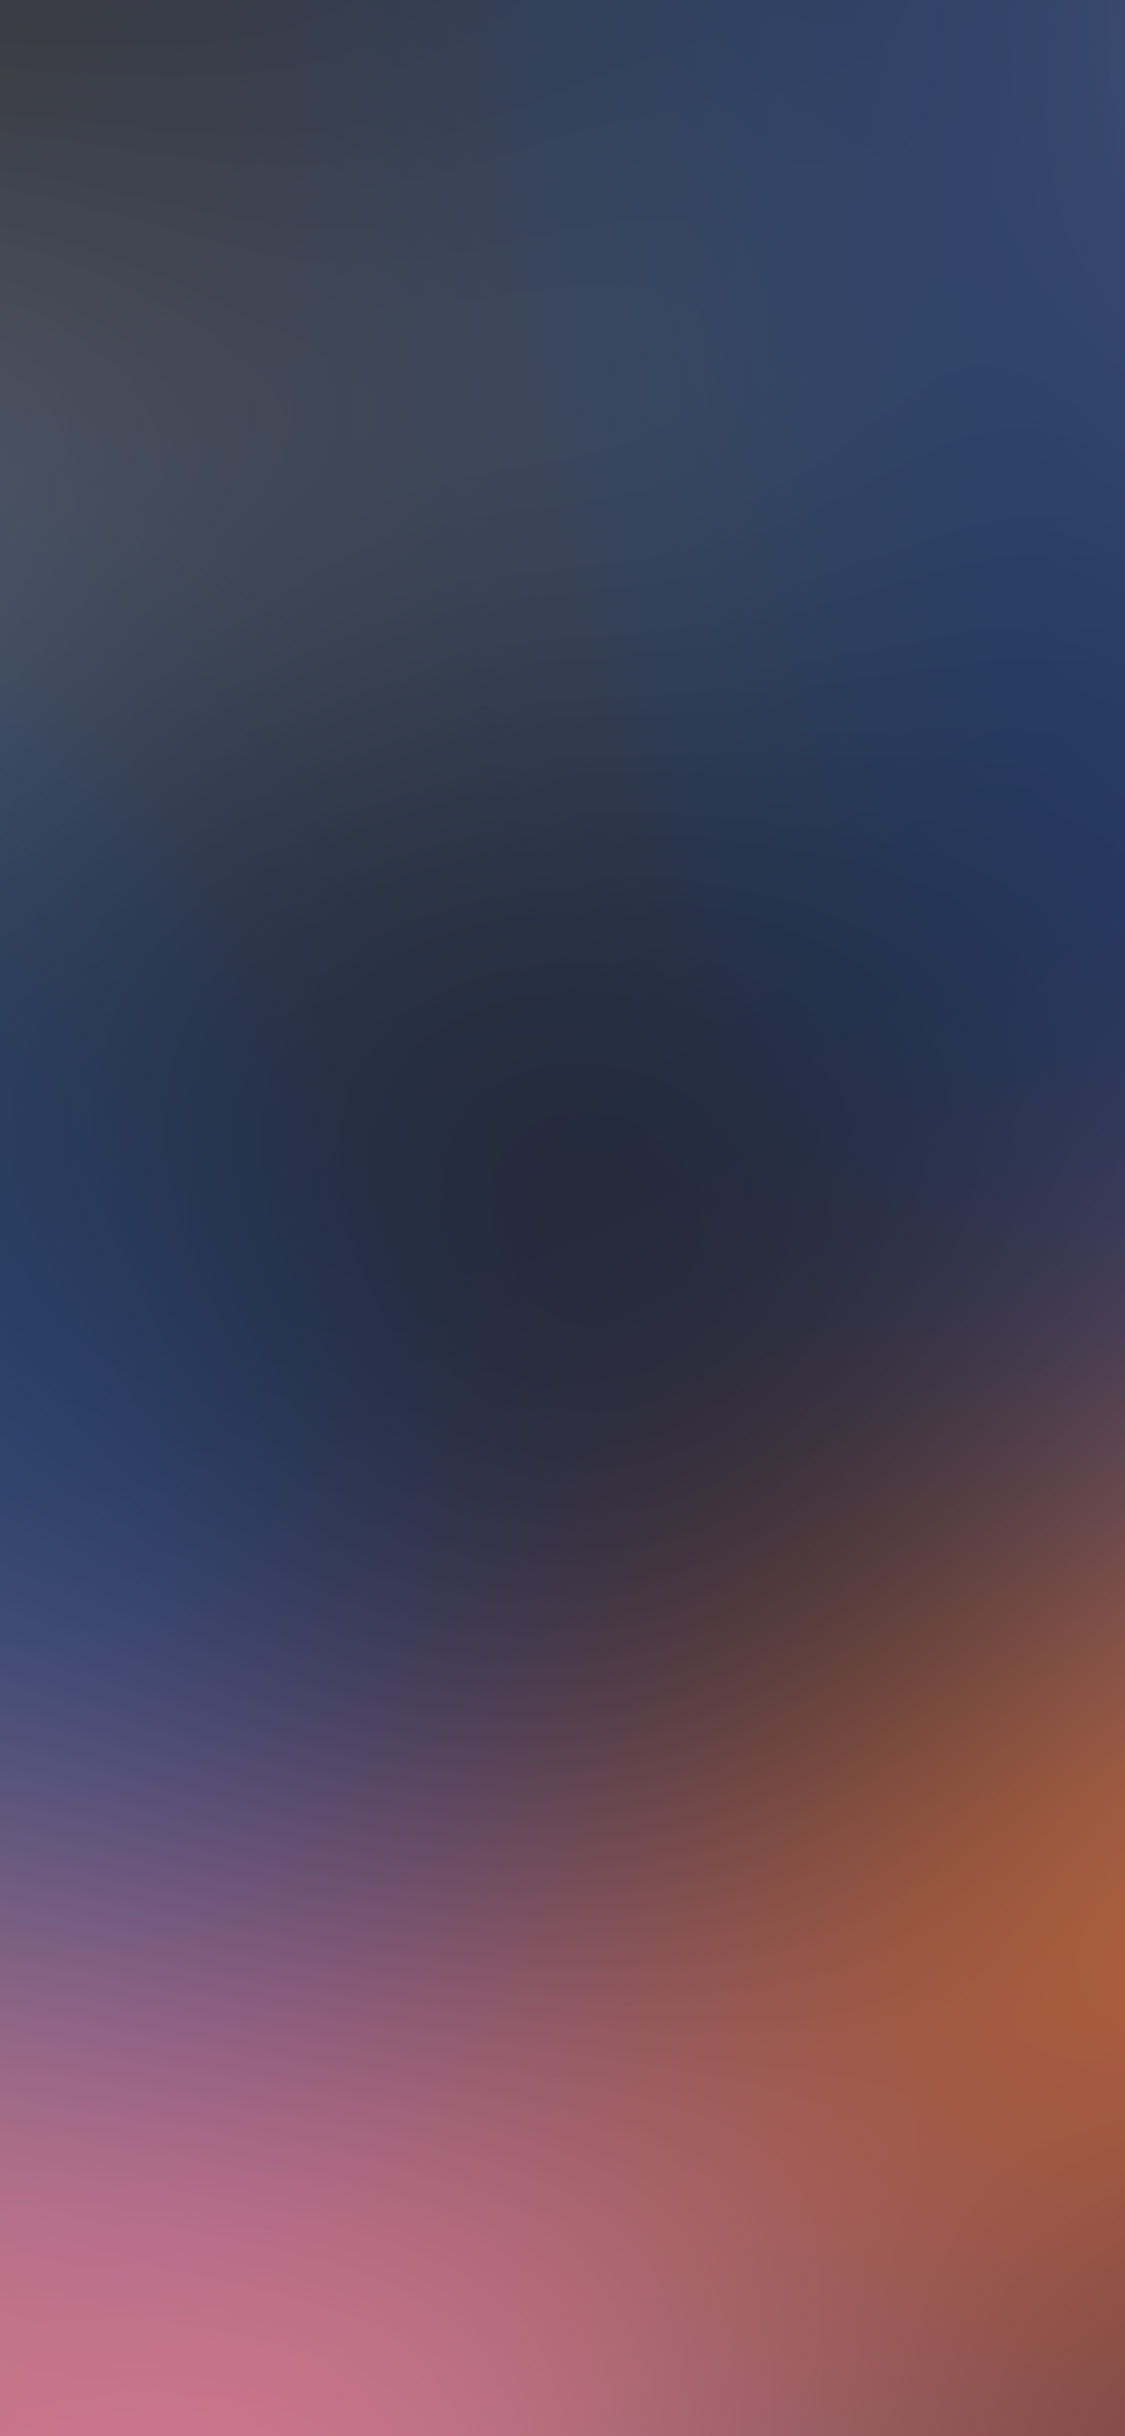 Papers Co Iphone Wallpaper Sm70 Blue Abstract Blur Gradation